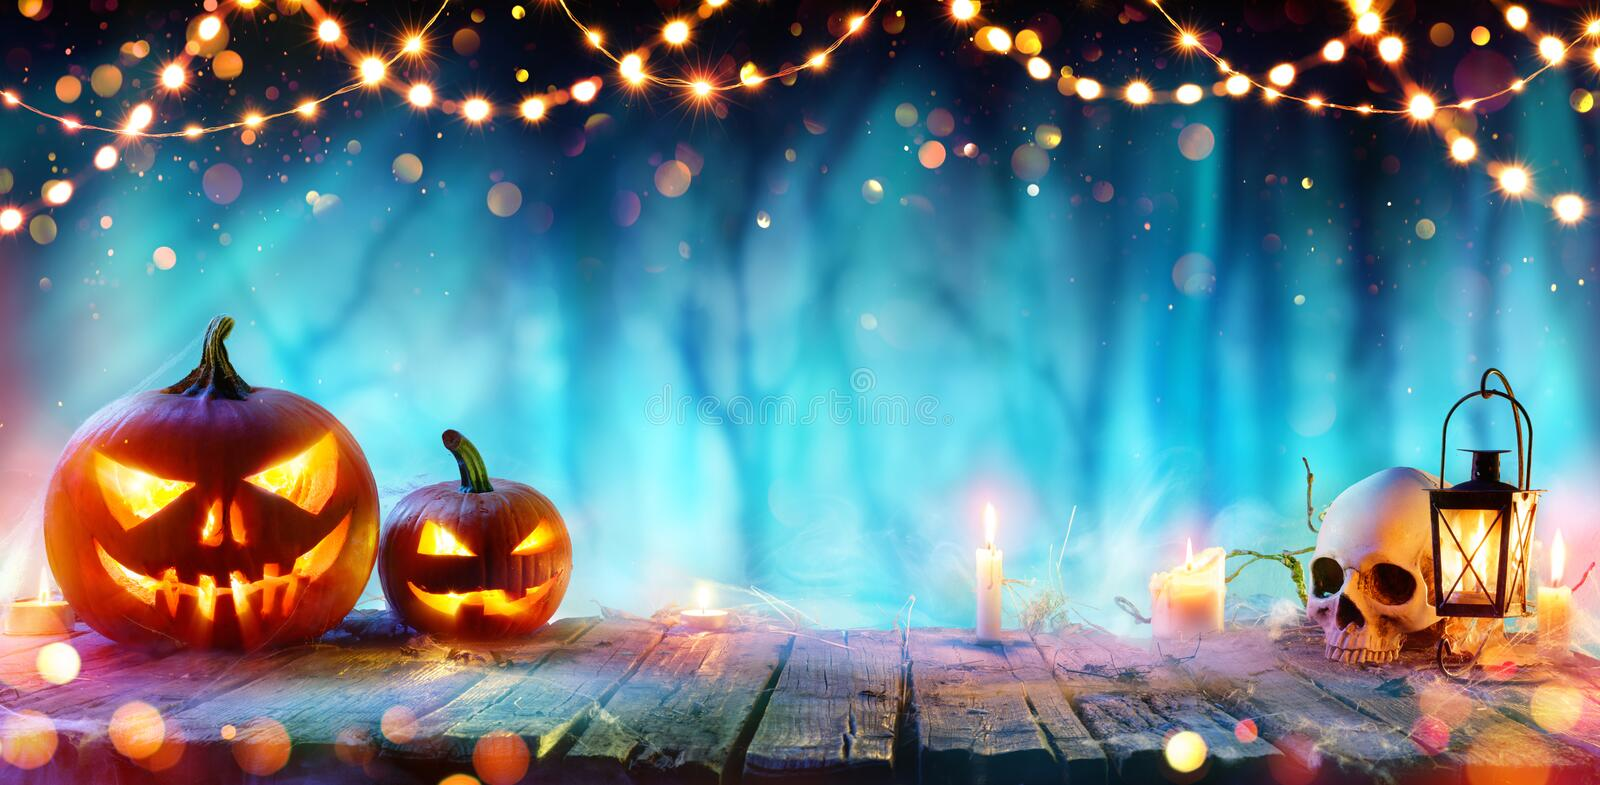 Halloween Party - Jack O` Lanterns And String Lights On Table royalty free stock photo